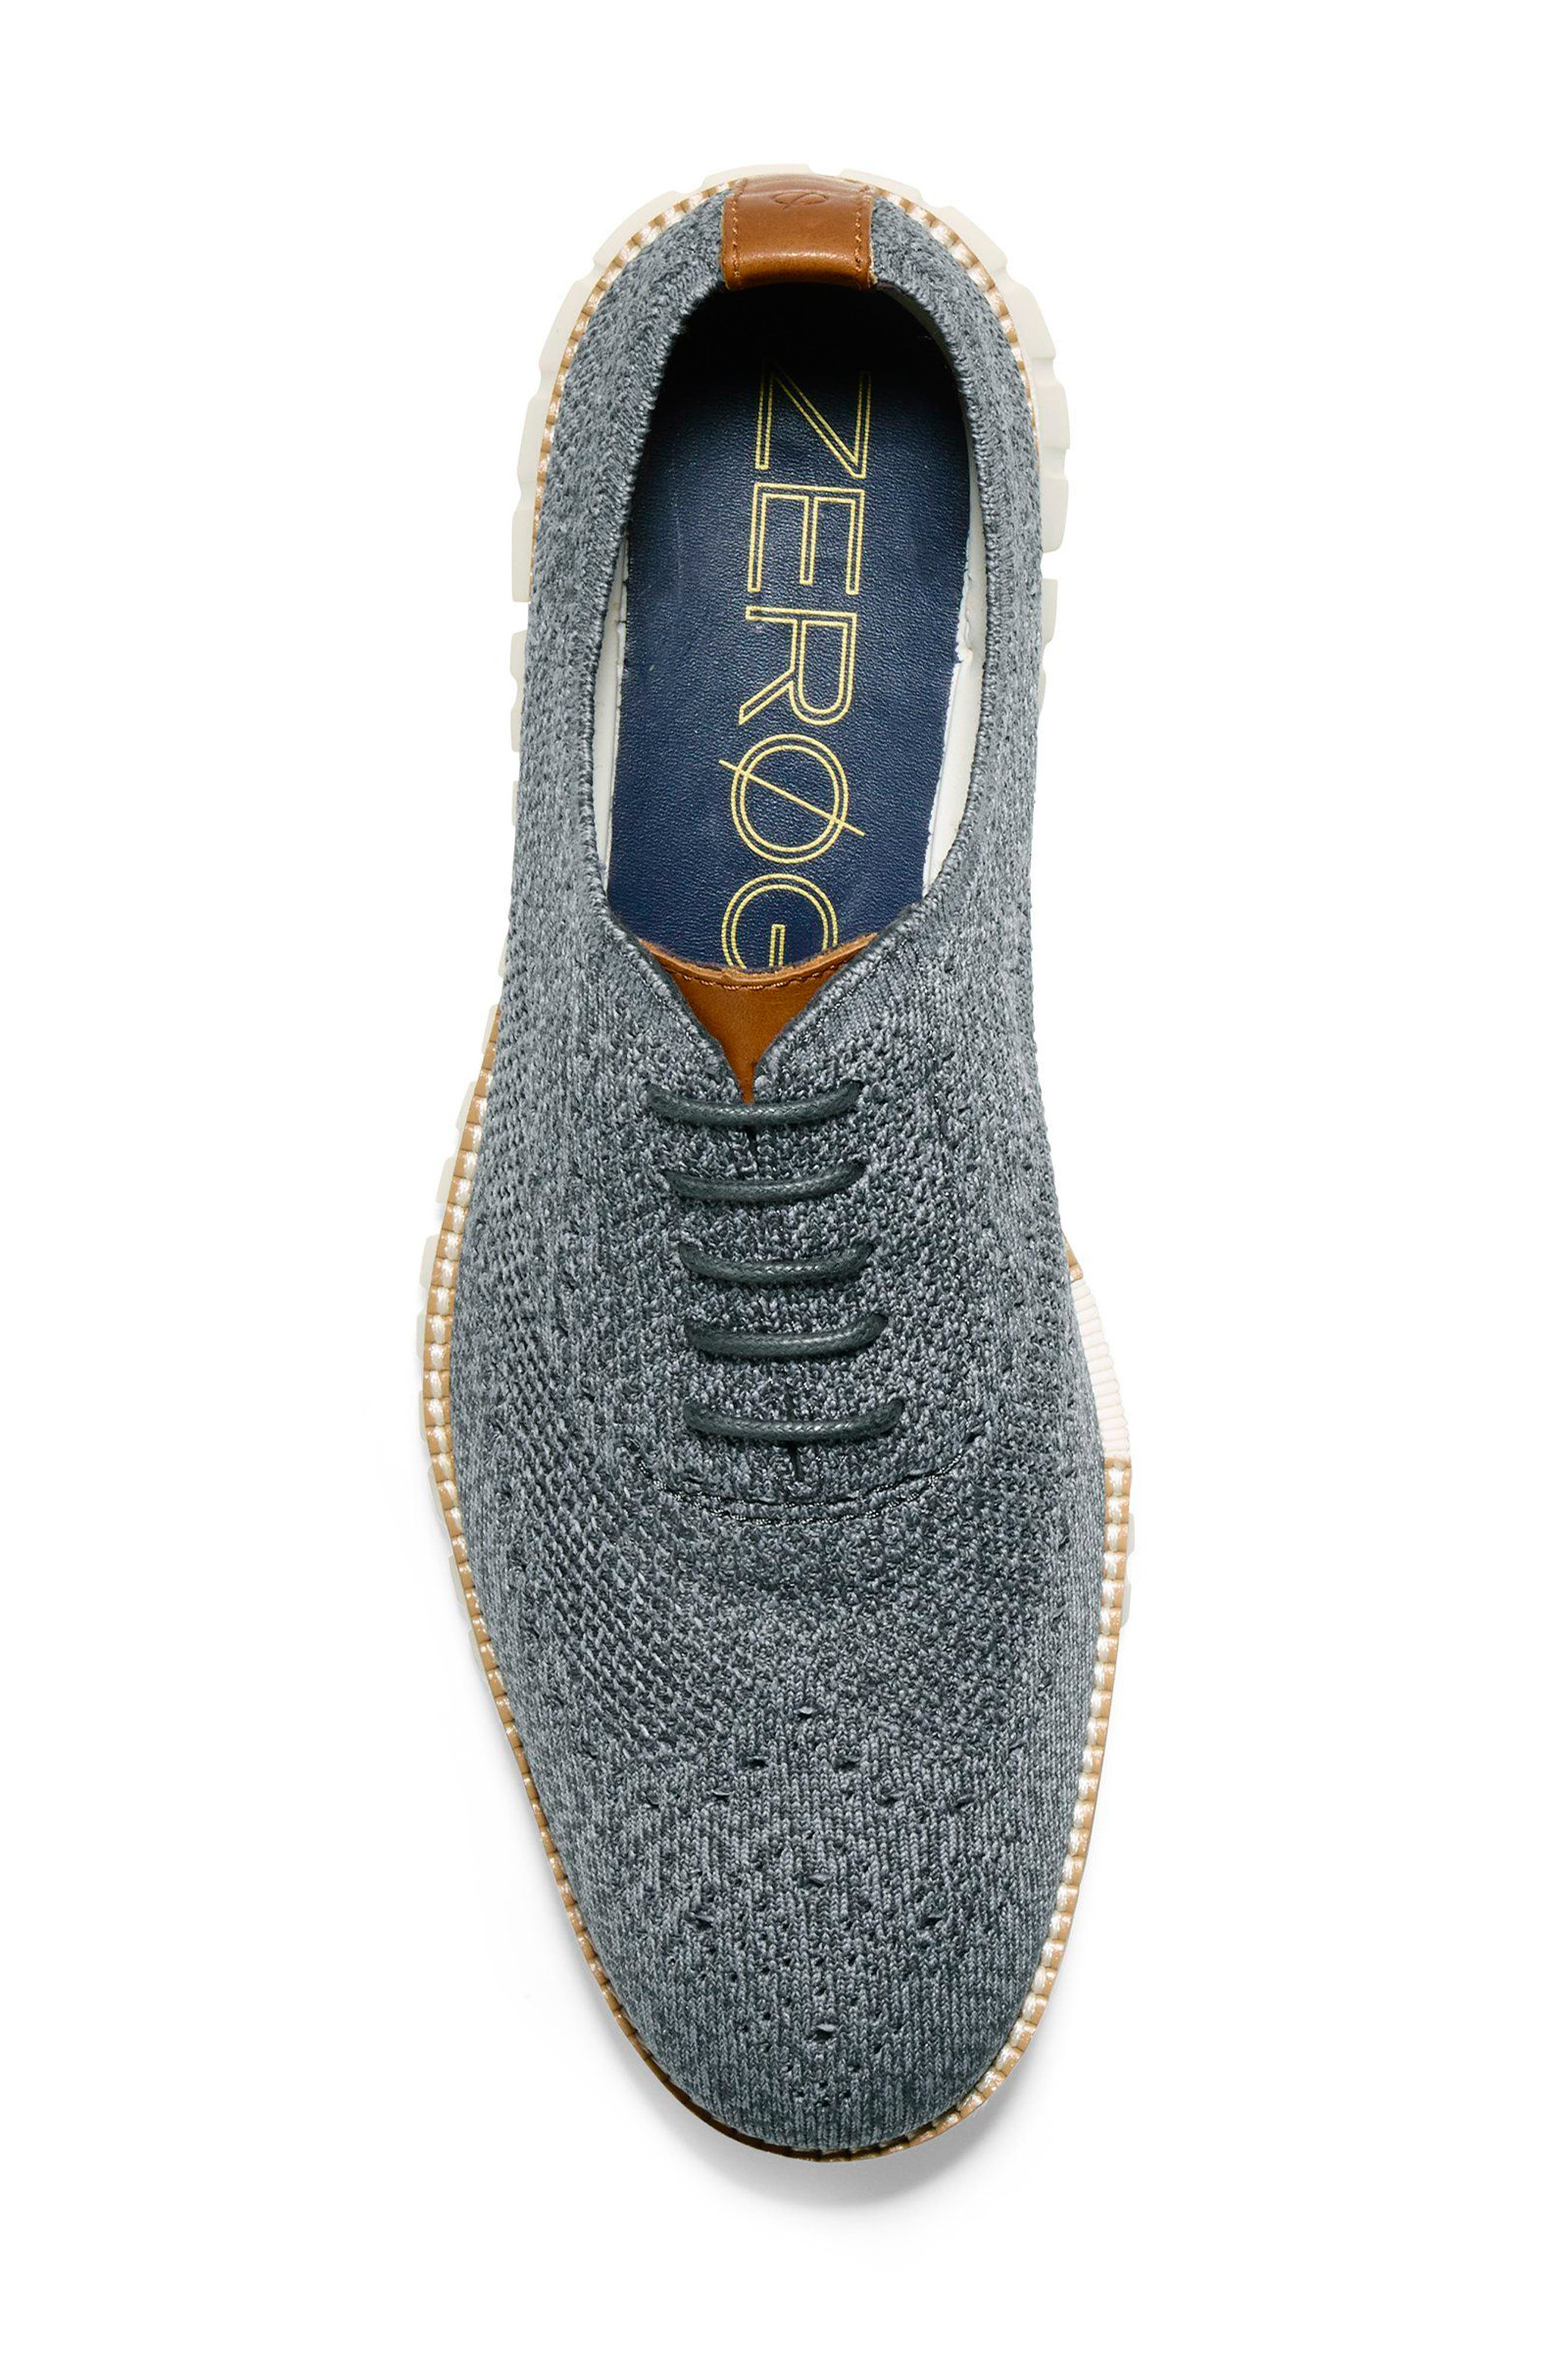 ZeroGrand Stitchlite Woven Wool Wingtip,                             Alternate thumbnail 5, color,                             IRONSTONE/ MAGNET/ IVORY